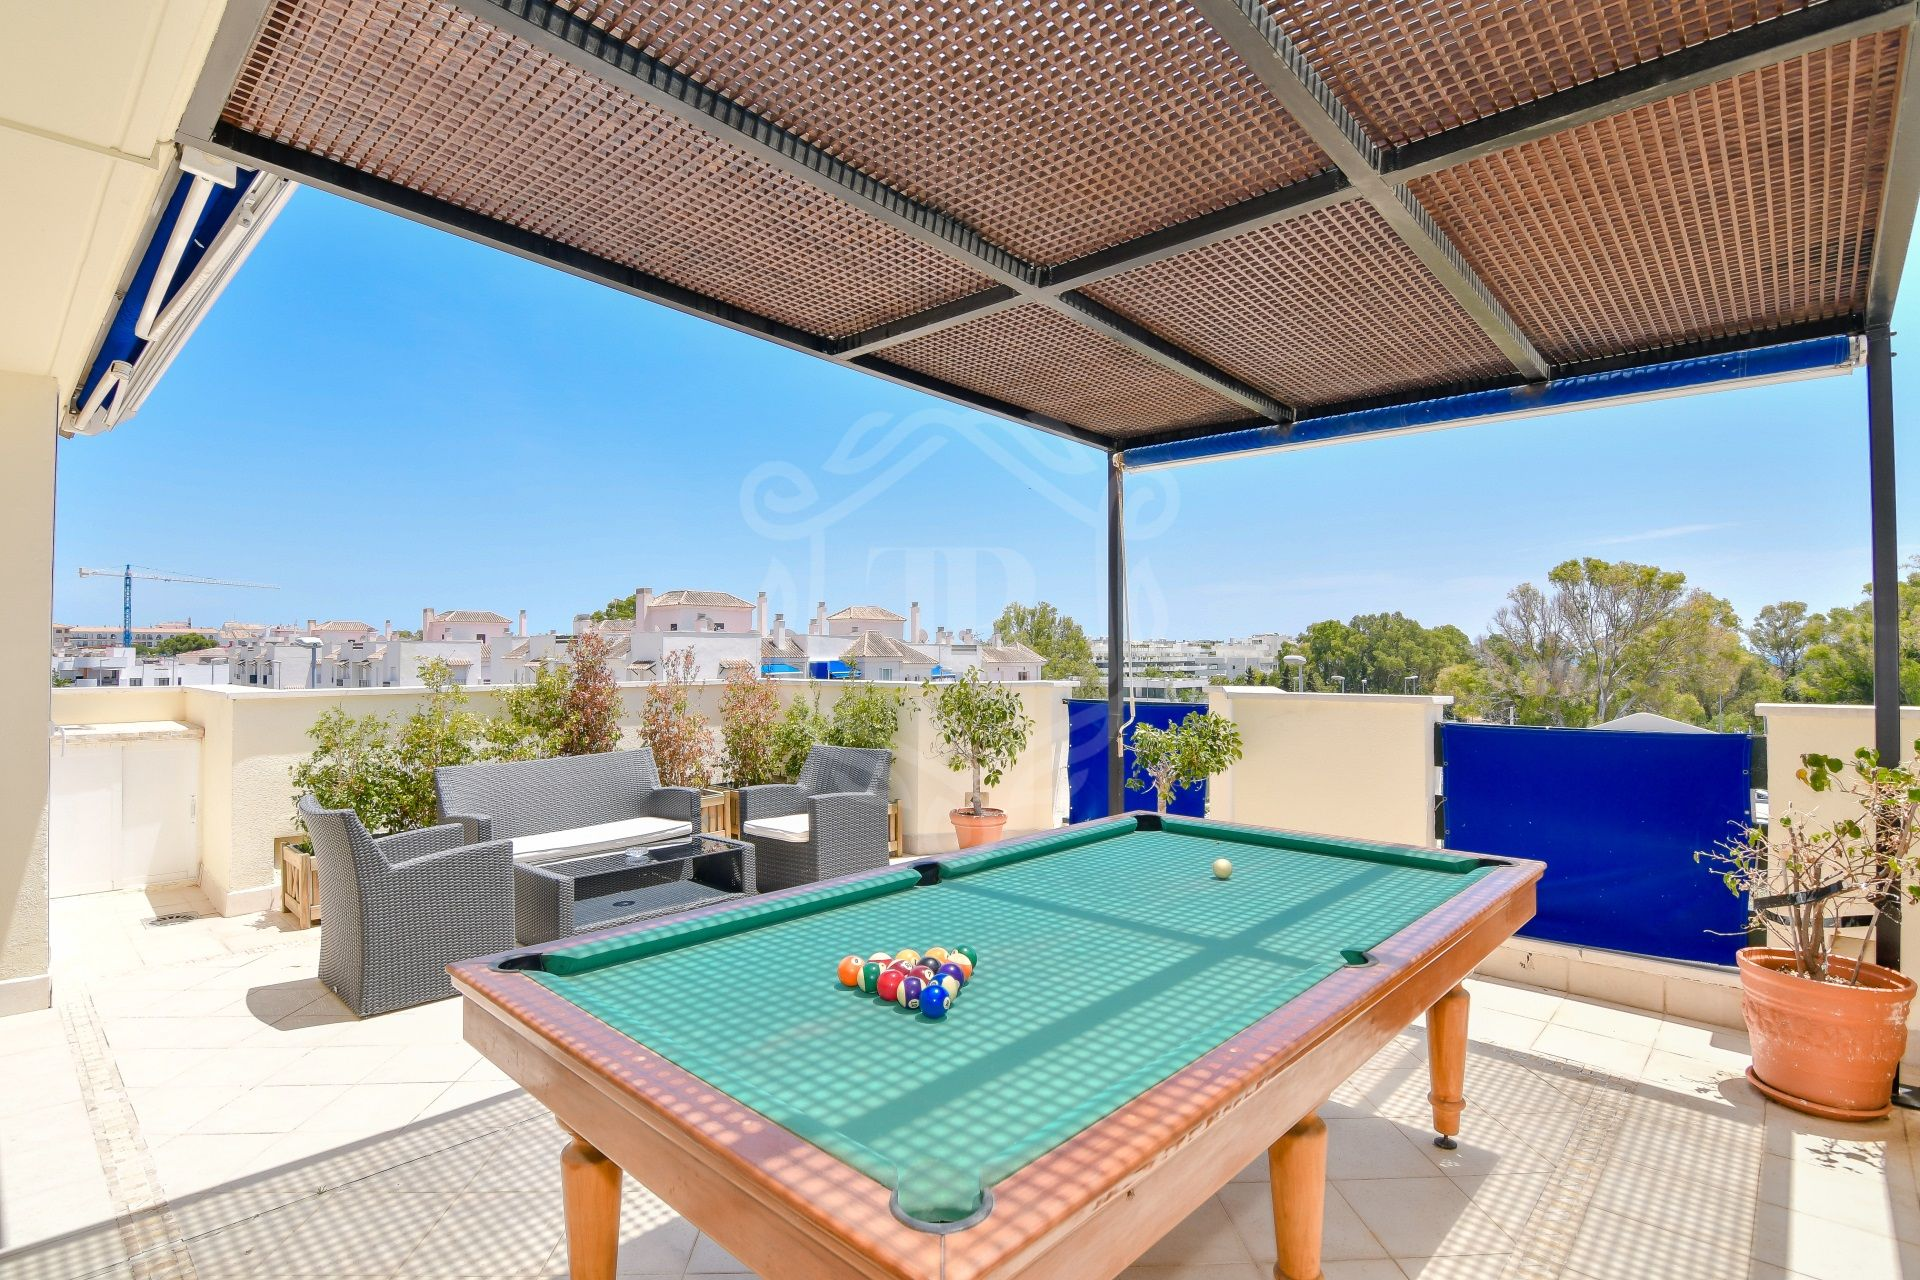 Beautiful 2-bedroom penthouse with views a few minutes walk from Puerto Banus